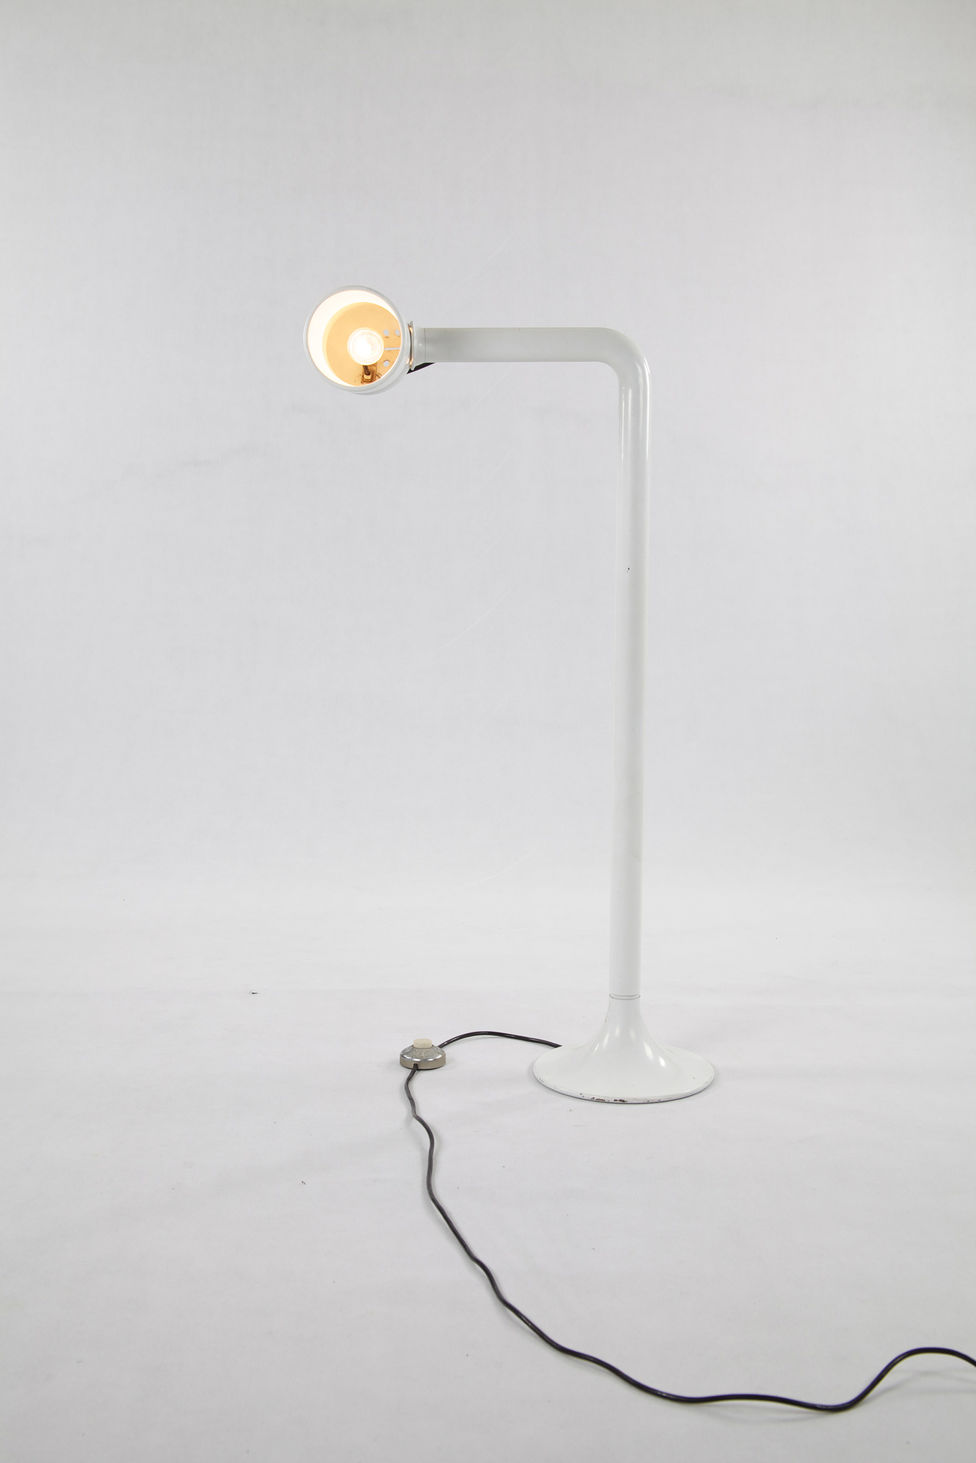 [Translate to en:] Stehlampe Martinelli Luce 70iger